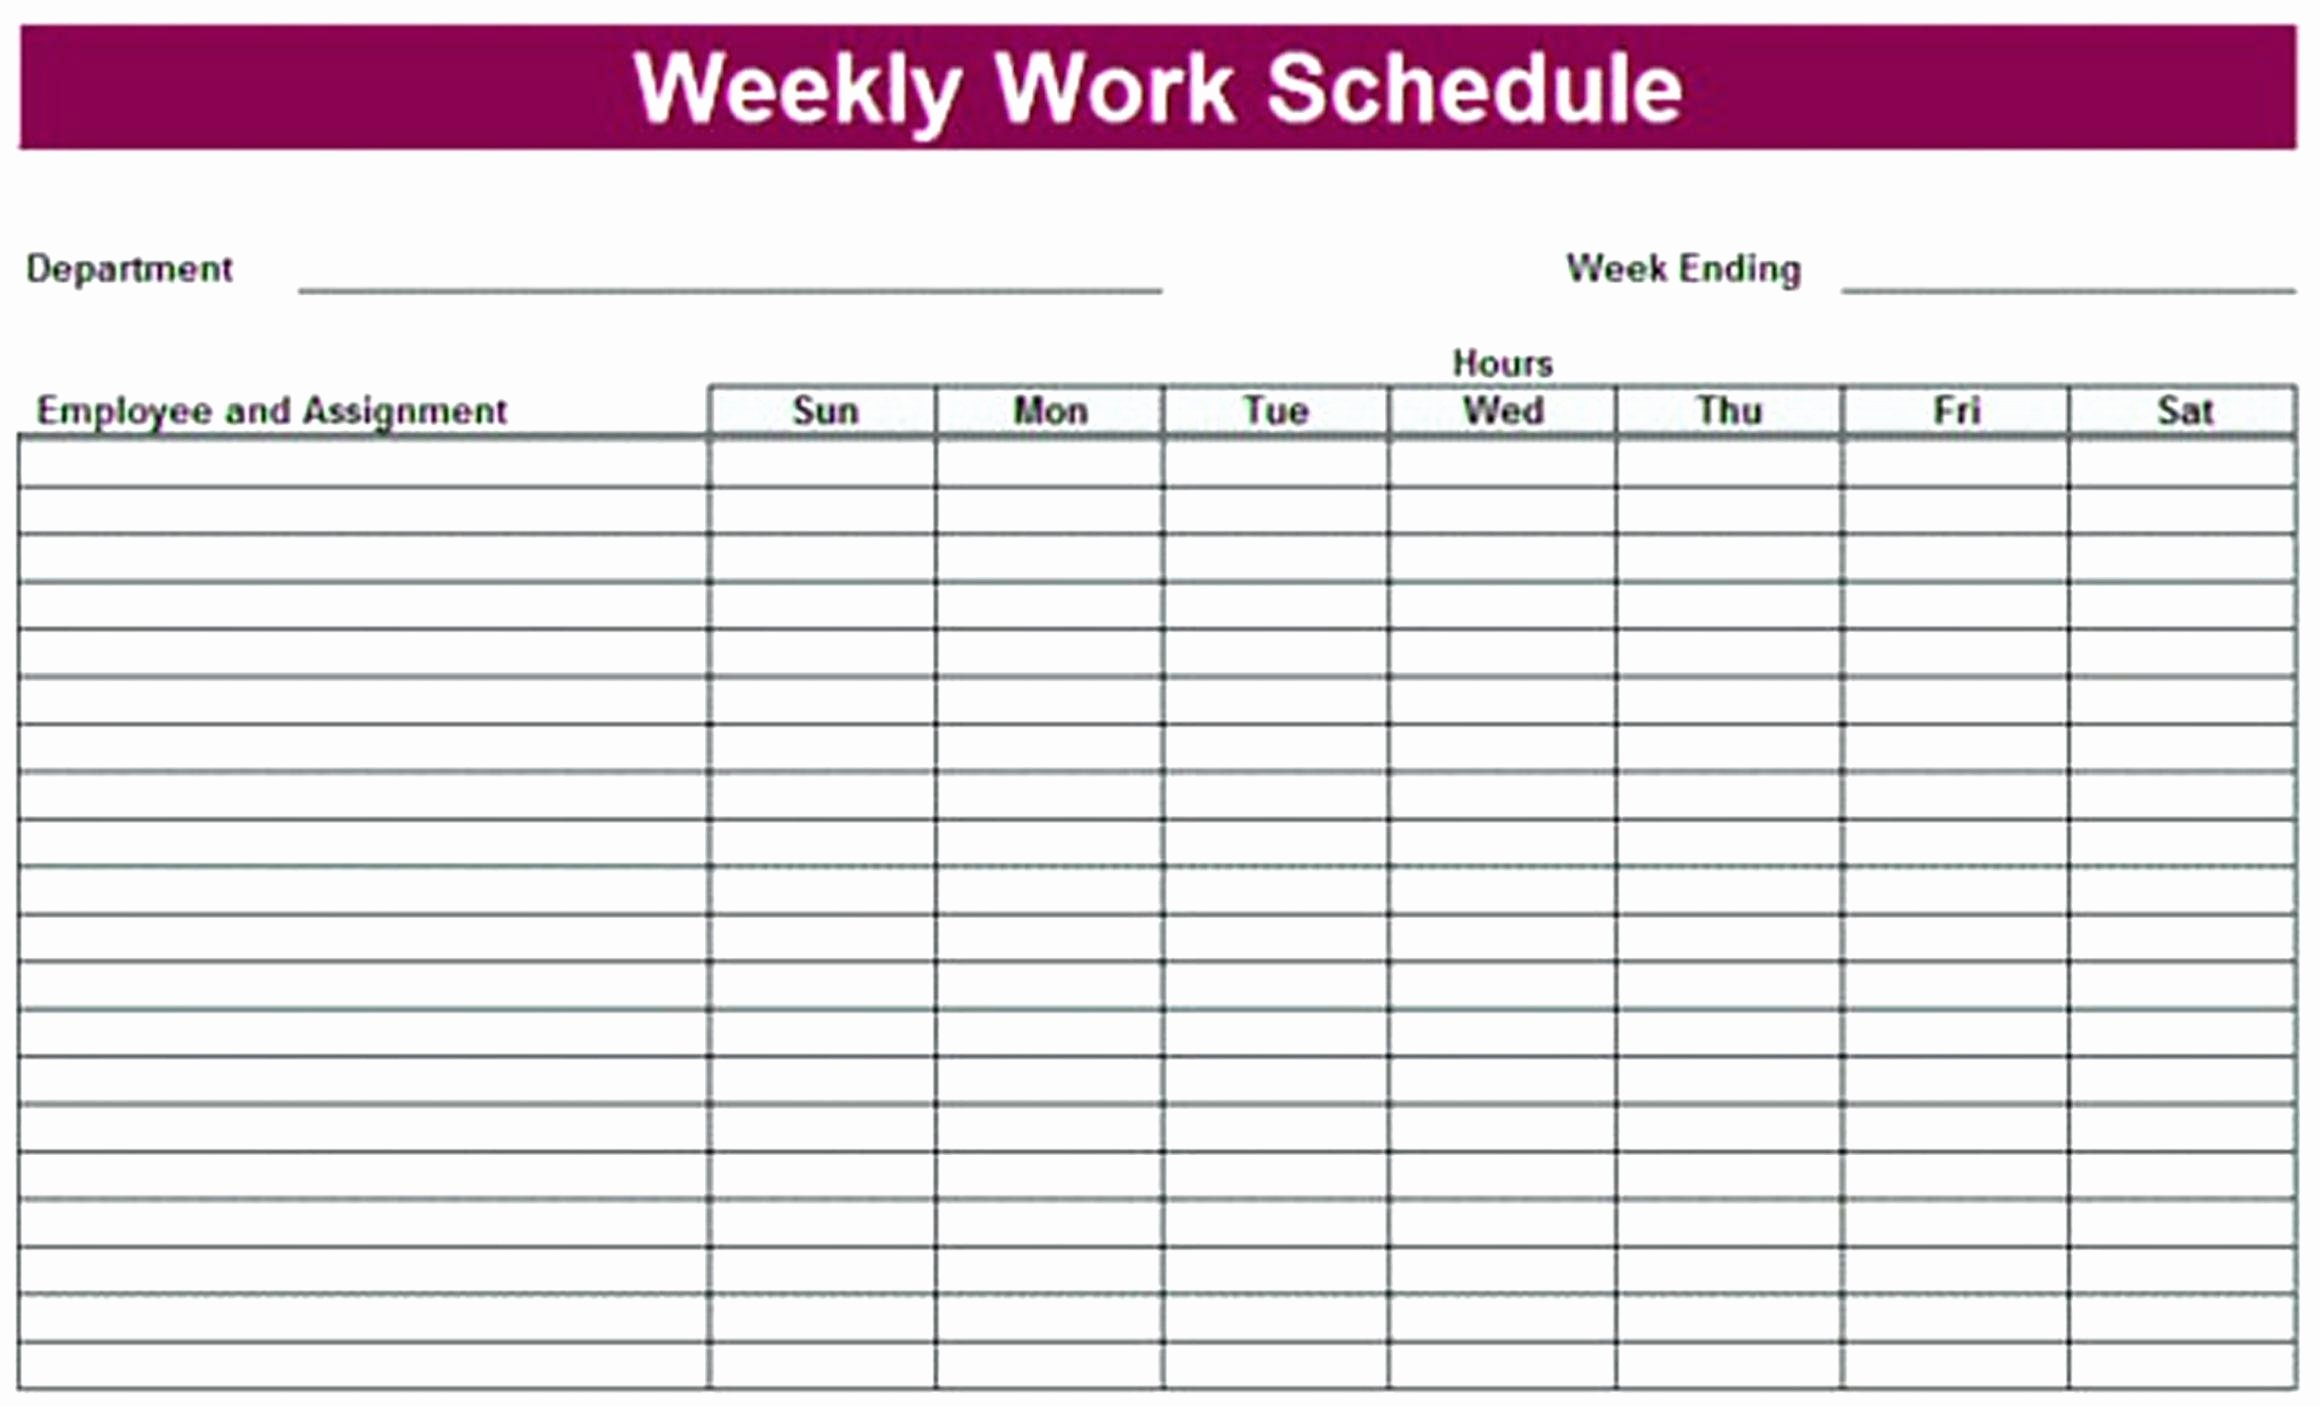 24 Hour Weekly Schedule Template Best Of Printable 24 Hour Weekly Schedule Printable